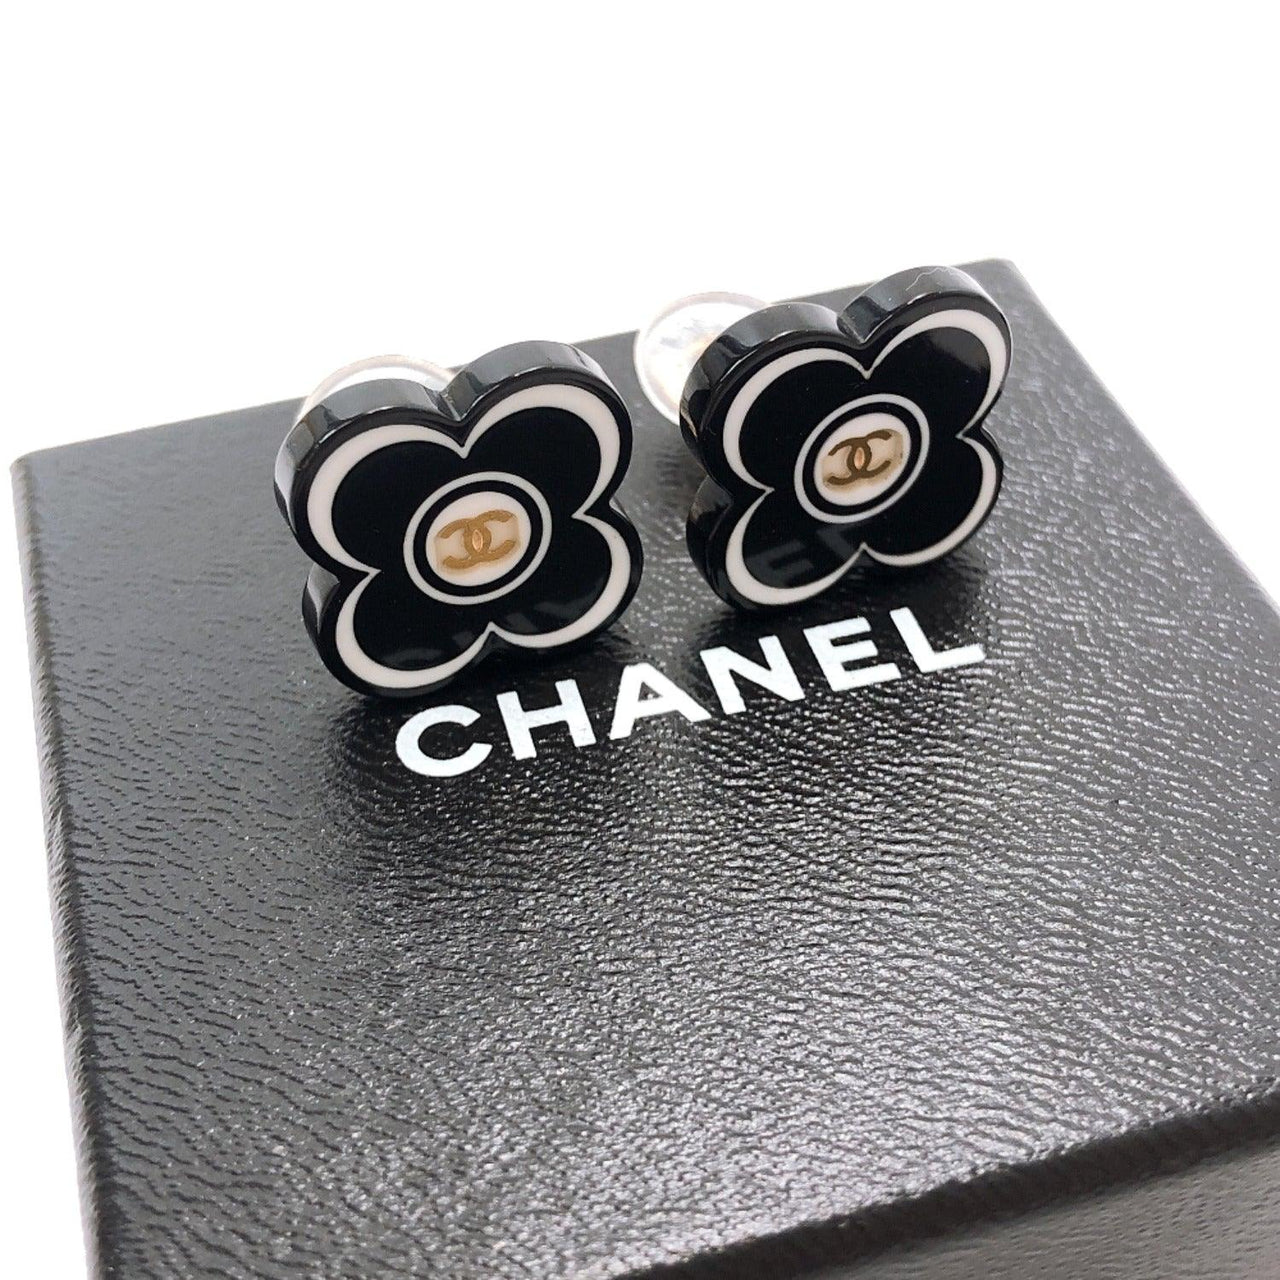 CHANEL Earring 02P COCO Mark Synthetic resin/metal black Women Used